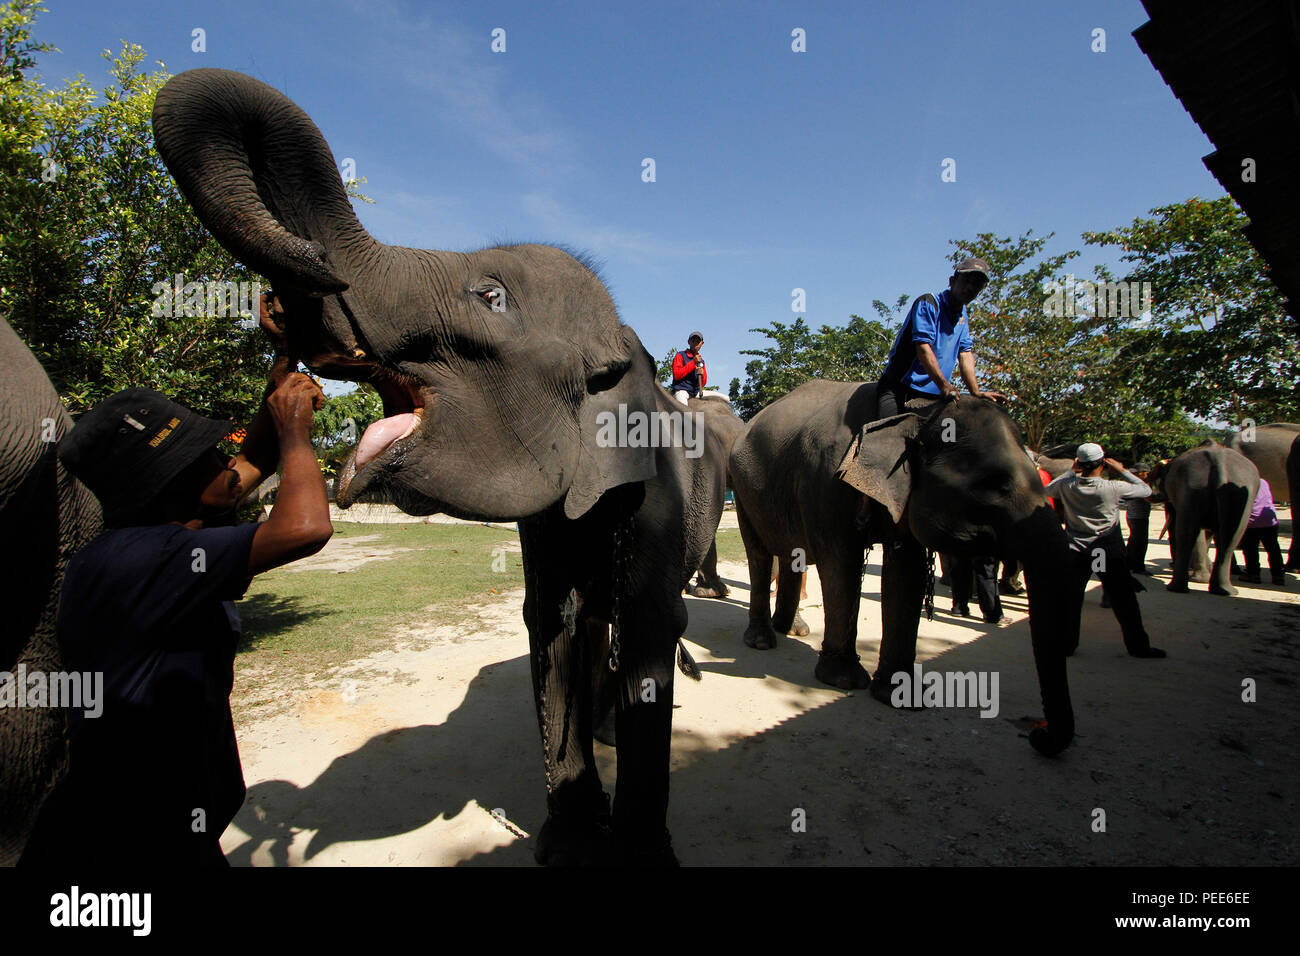 Elephants with their trainer queuing for anthelmintic injection at the Conservation in Minas, Siak Regency, Riau Province, Indonesia. The medical exam - Stock Image